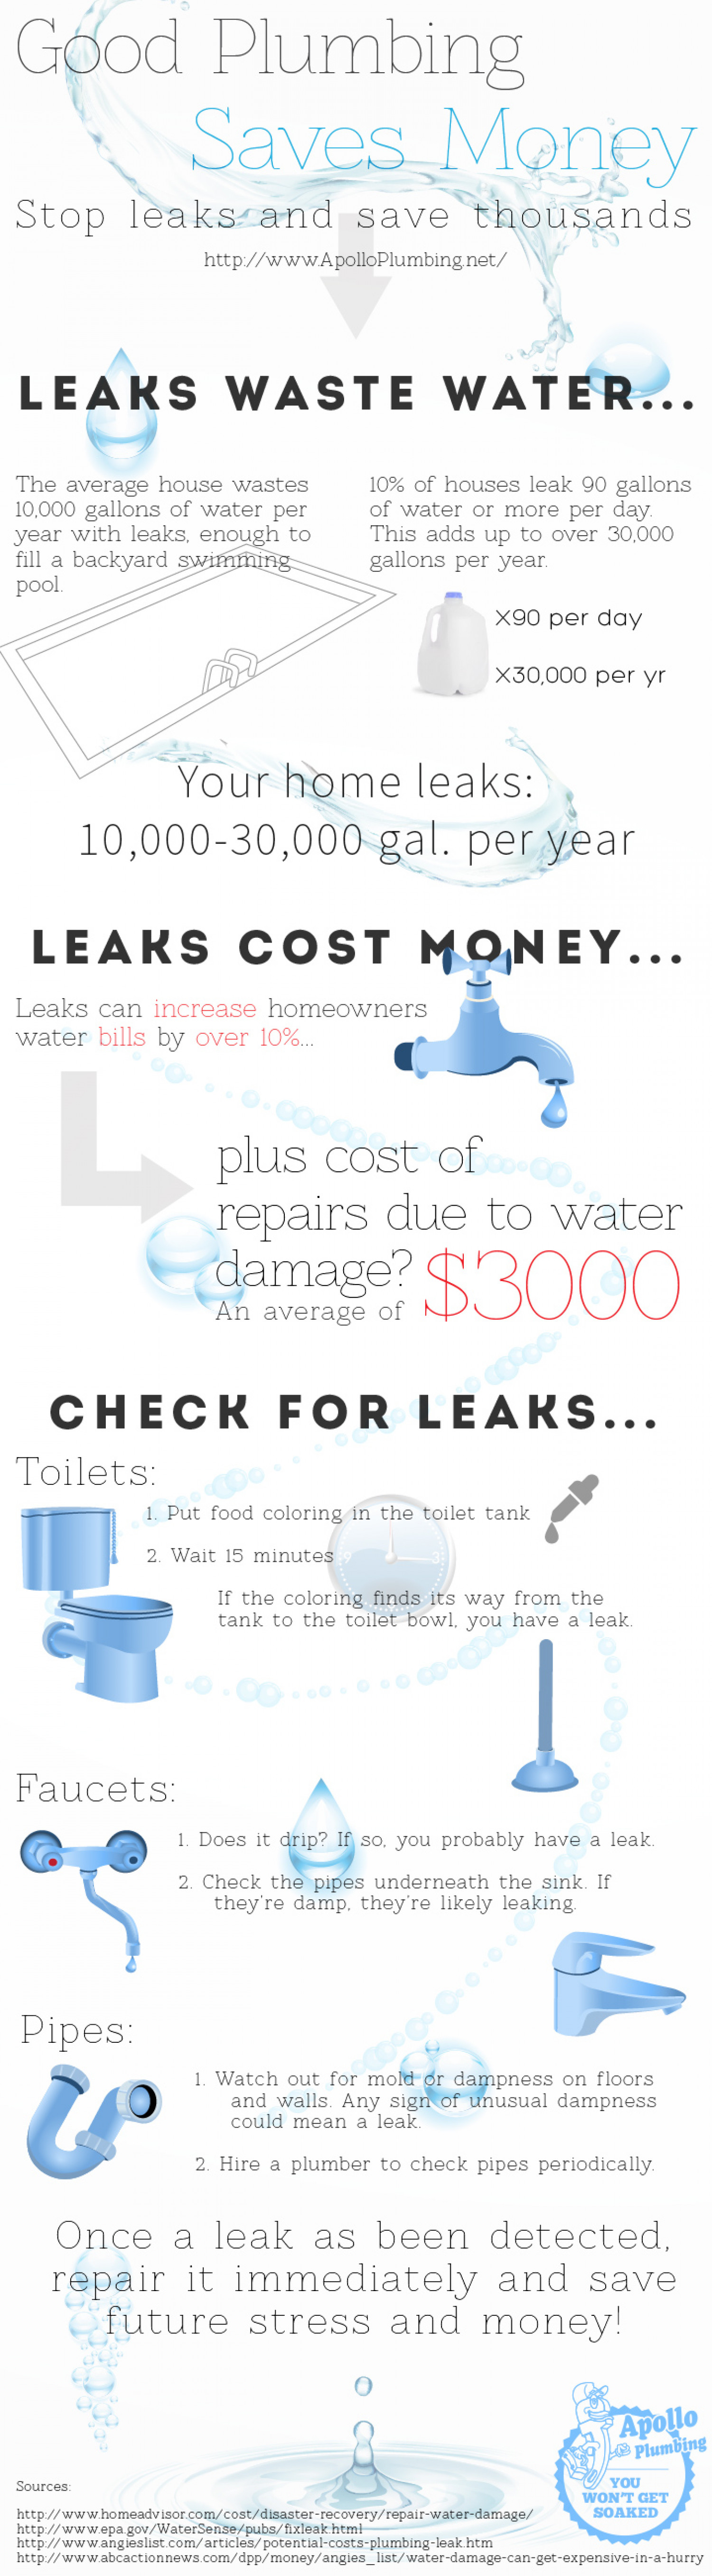 Good Plumbing Saves Money Infographic